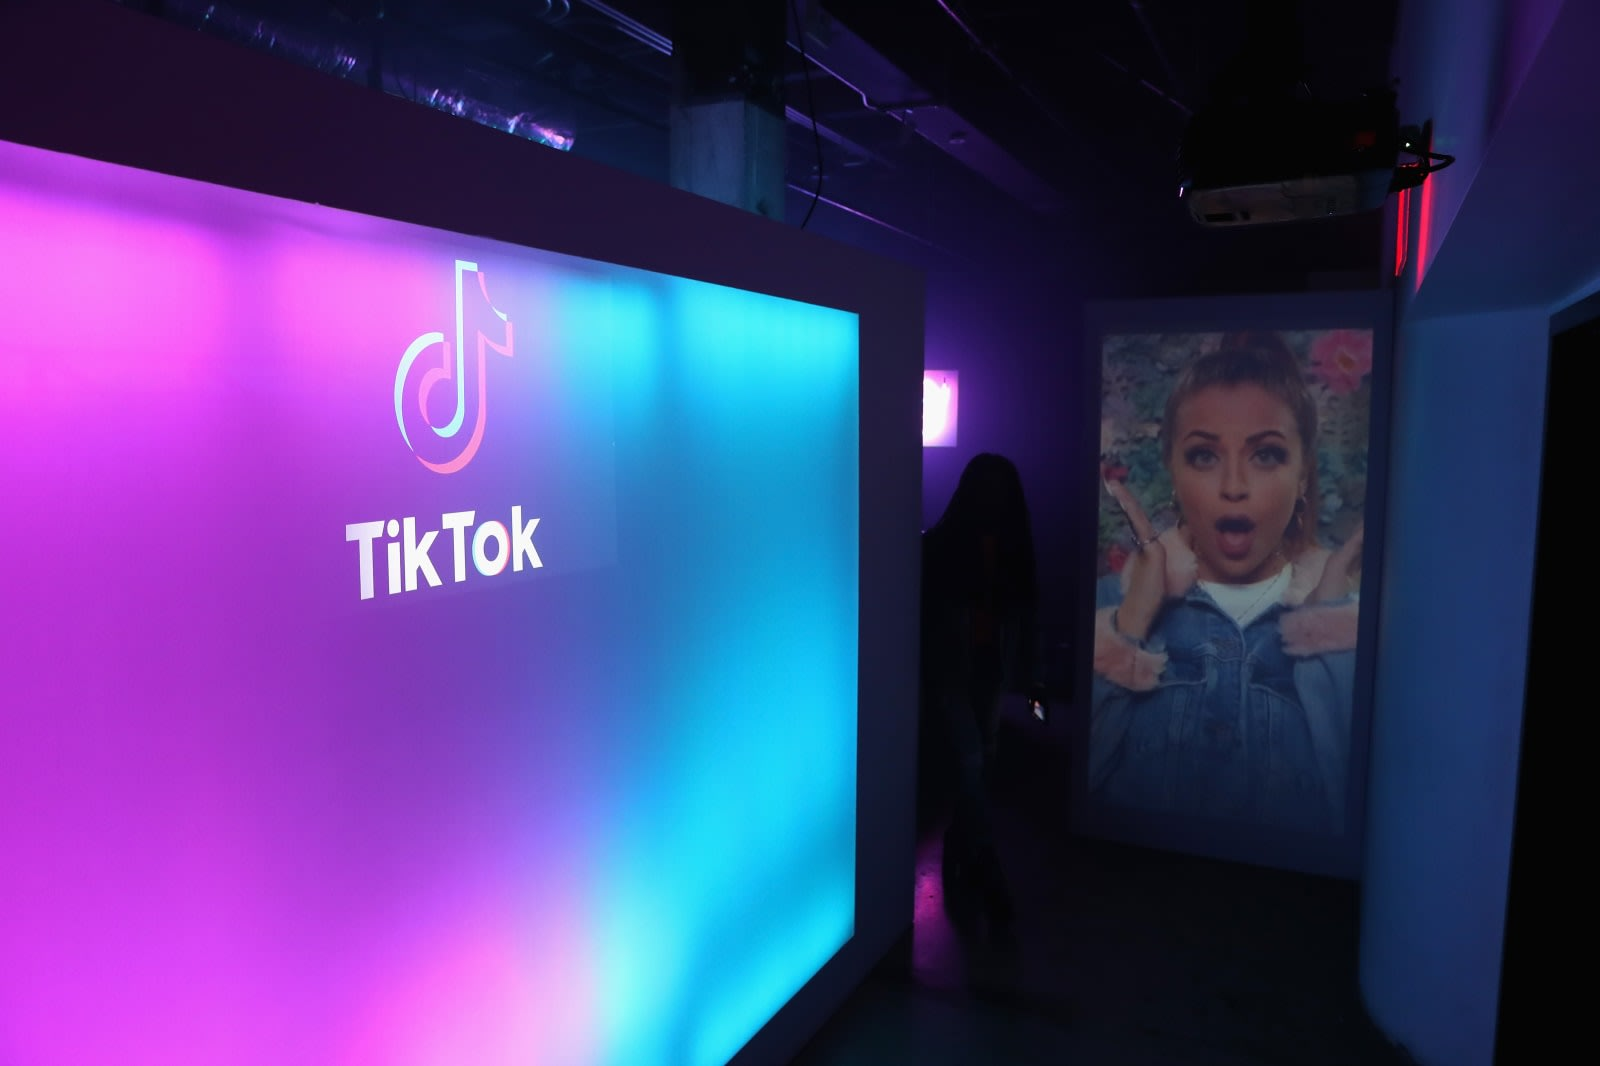 TikTok lets users add reaction videos to clips they watch